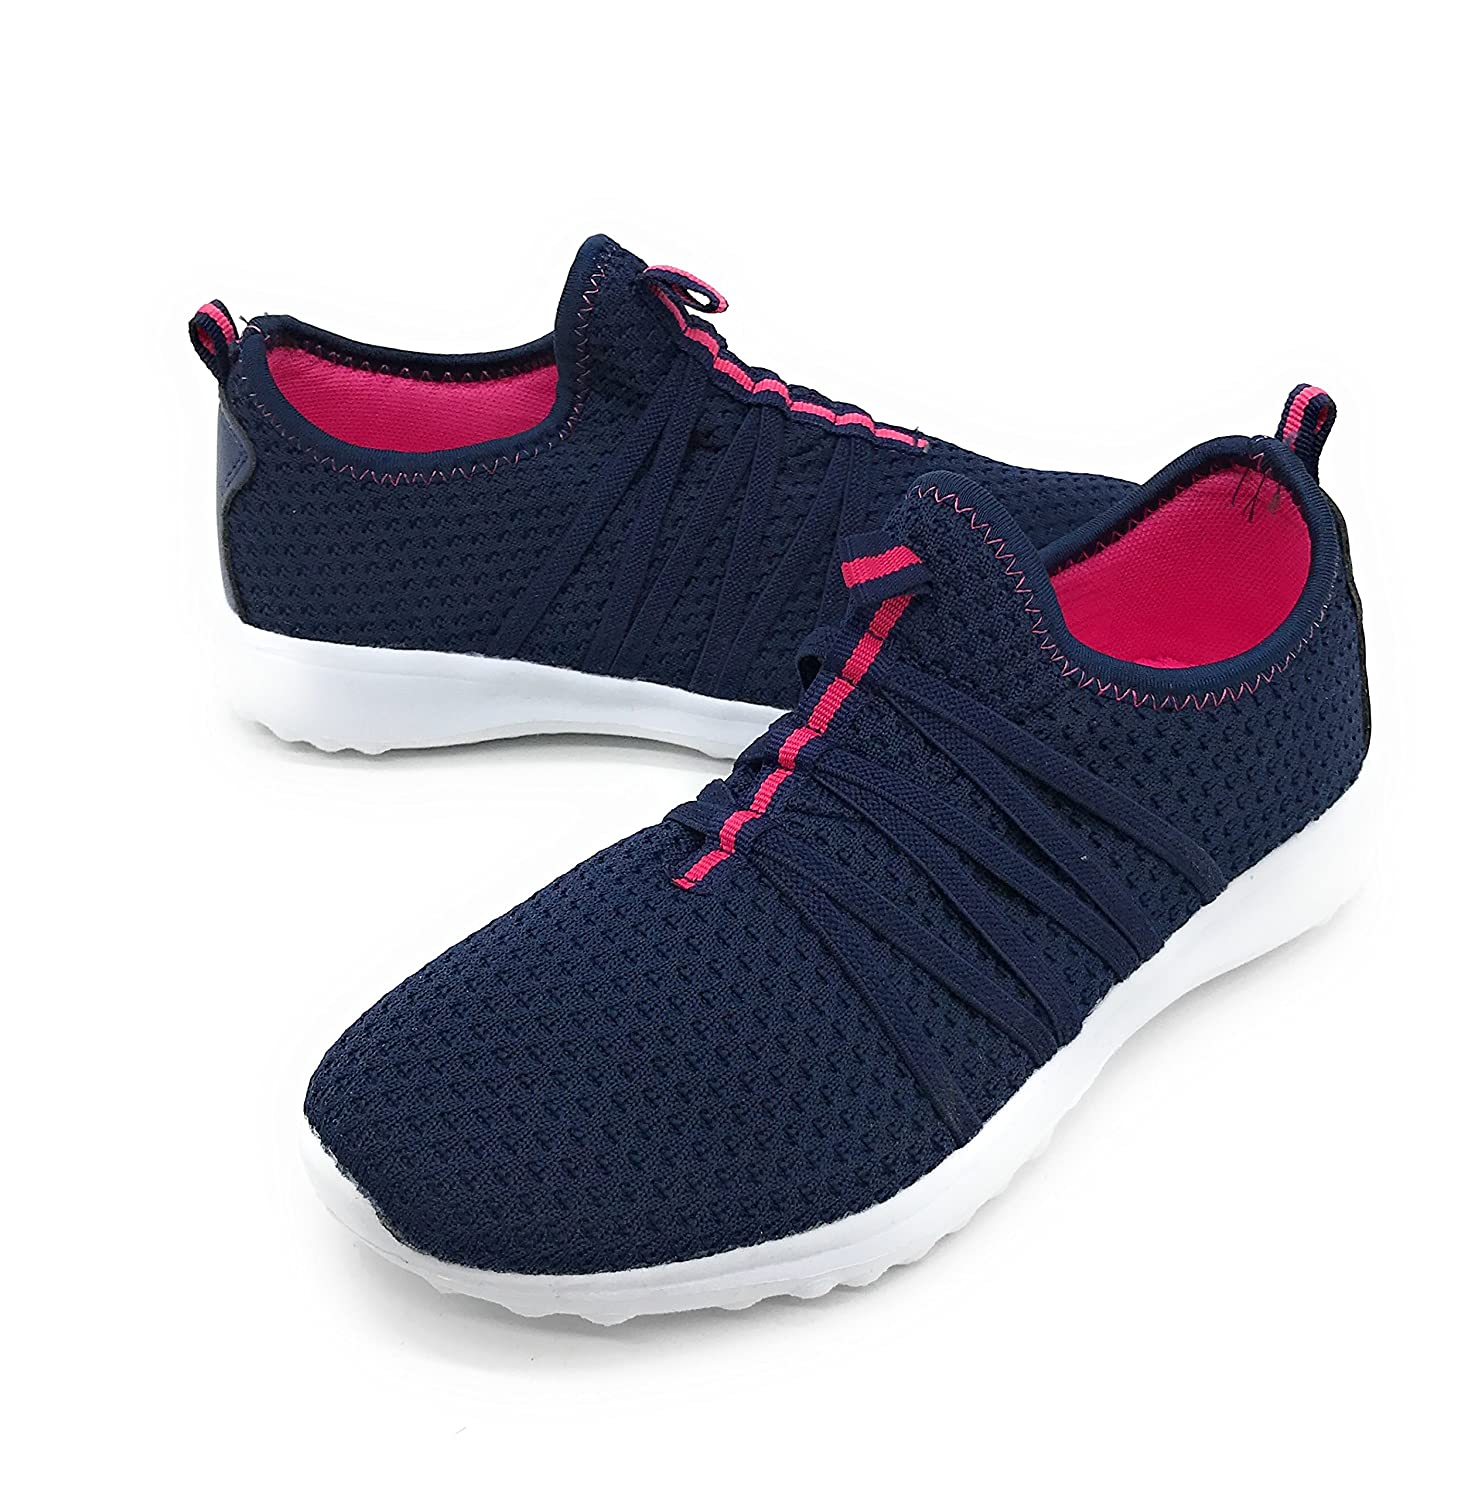 Blue Berry EASY21 Women Casual Fashion Sneakers Breathable Athletic Sports Light Weight Shoes B079VV3QGB 7 B(M) US|Navy01